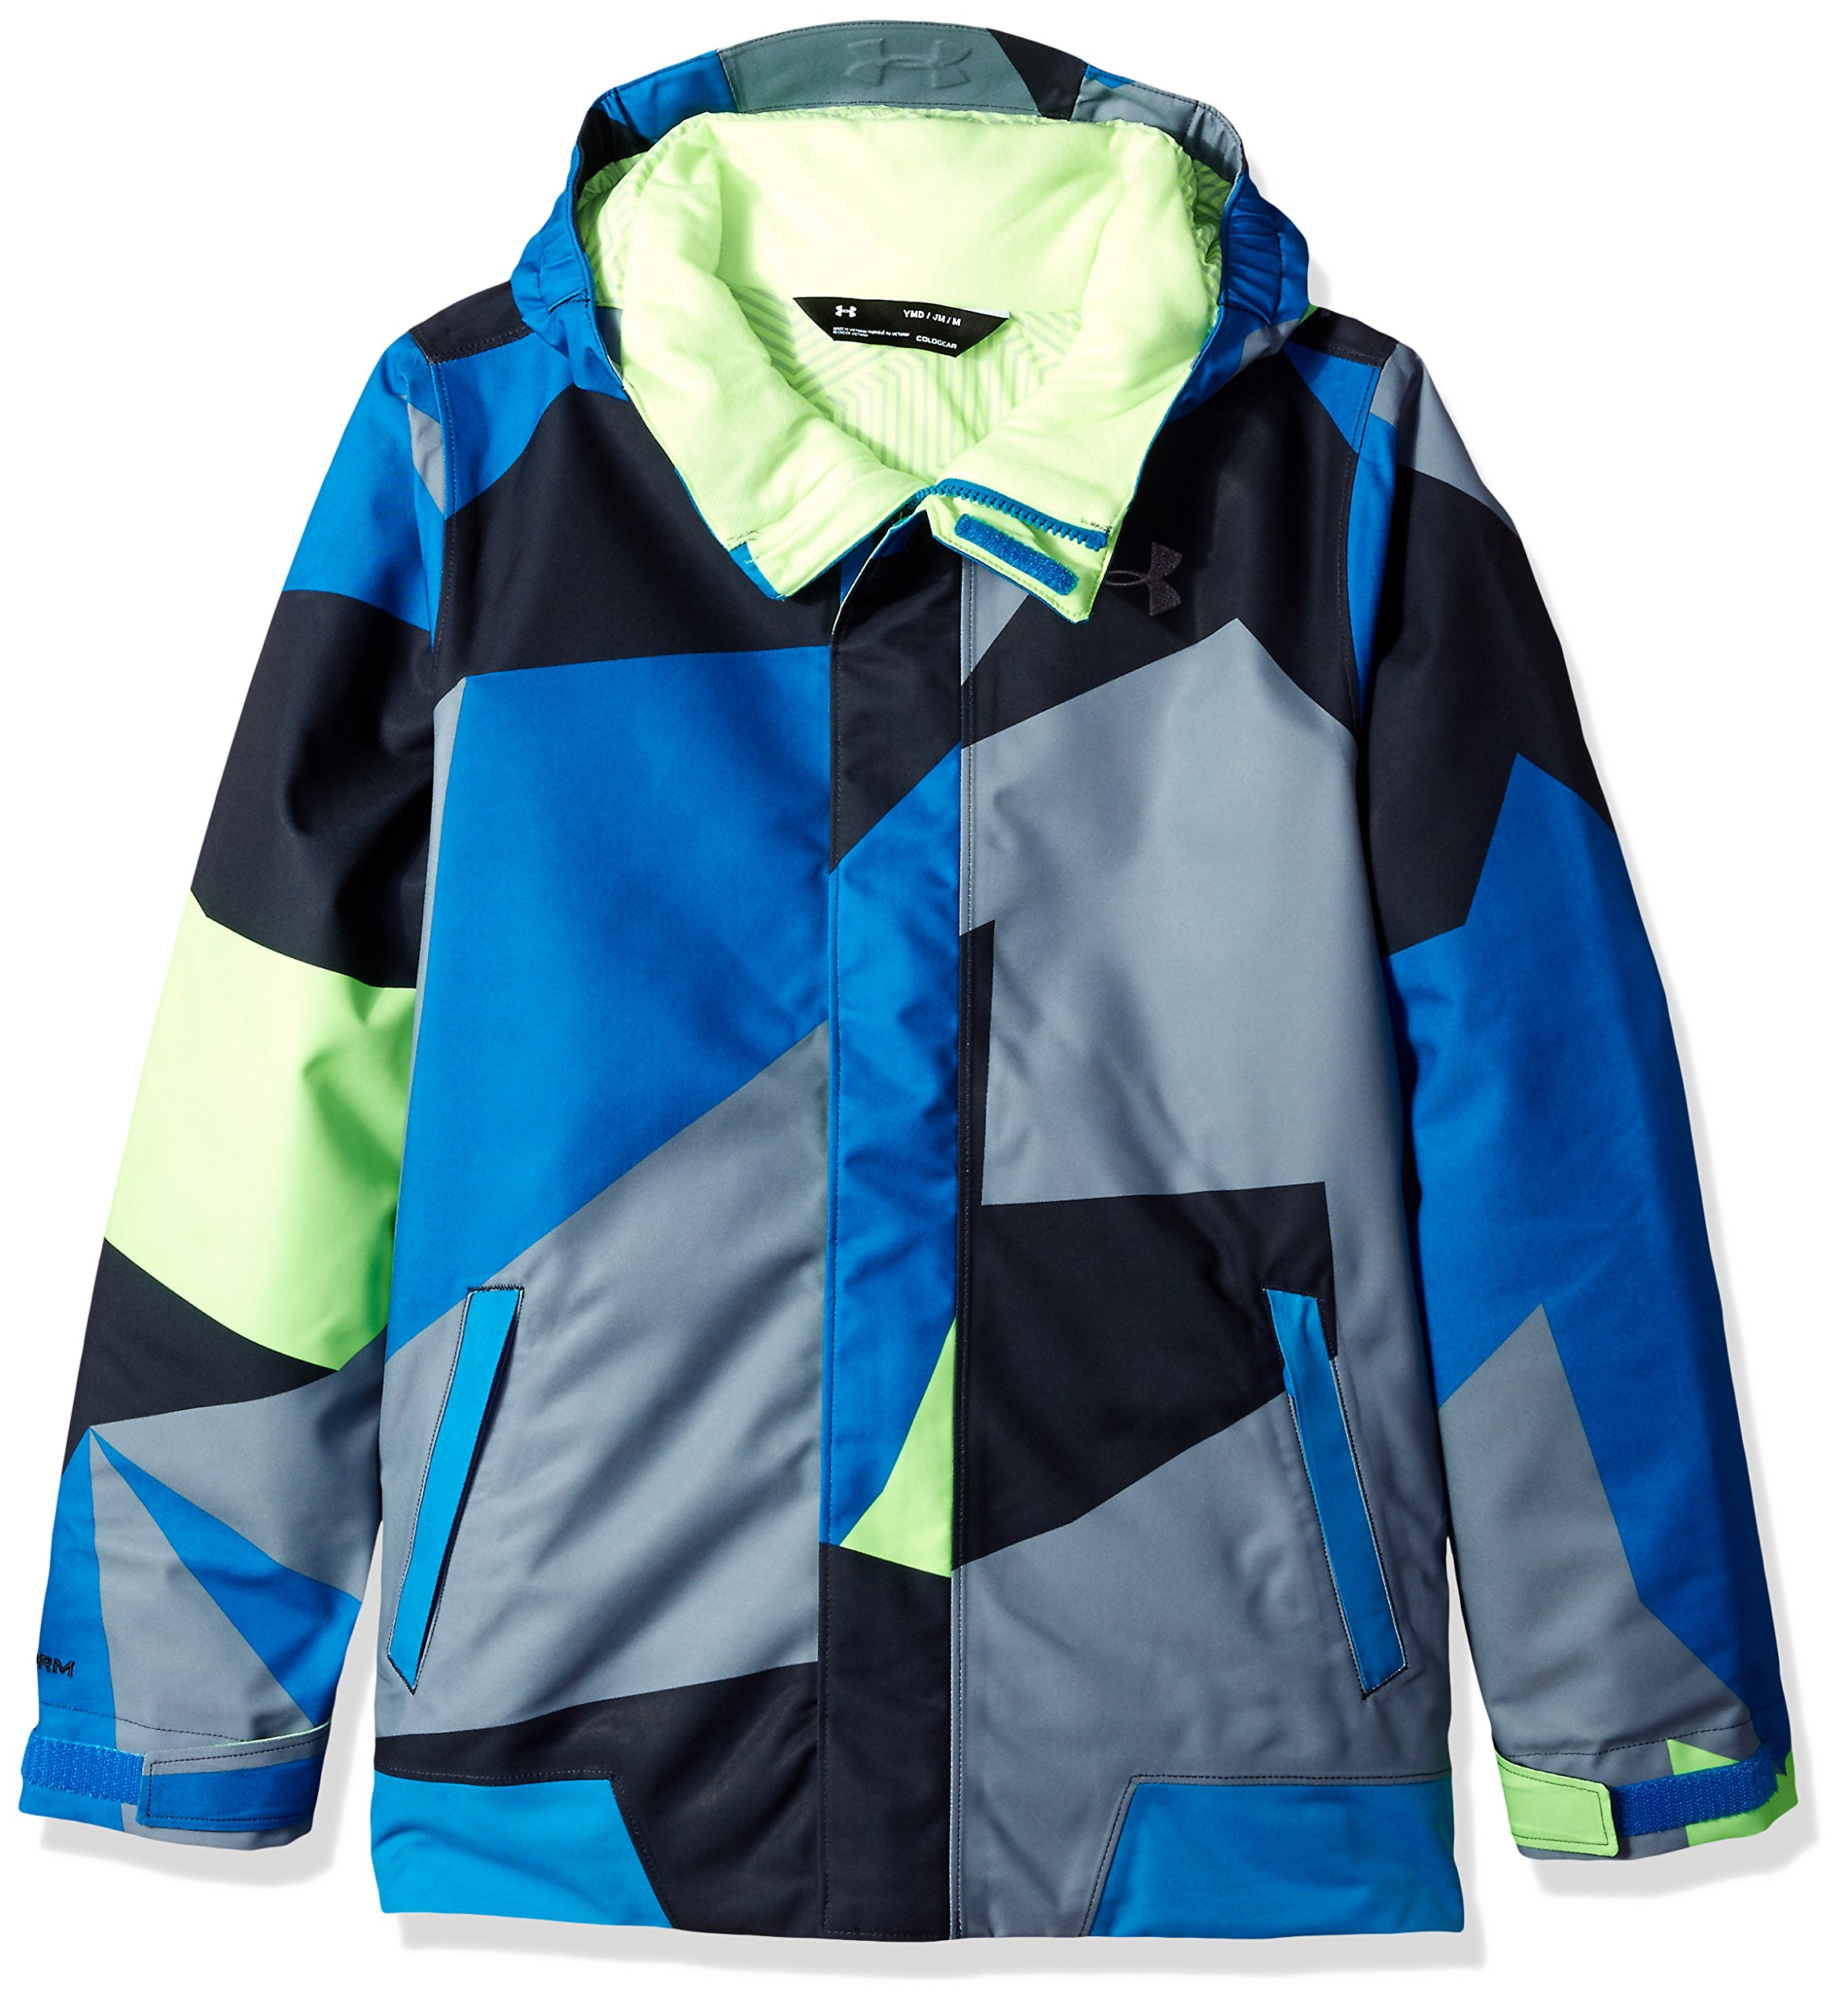 Under Armour Boys' Storm Powerline Insulated Jacket, Quirky Lime/Quirky Lime, Youth Medium by Under Armour